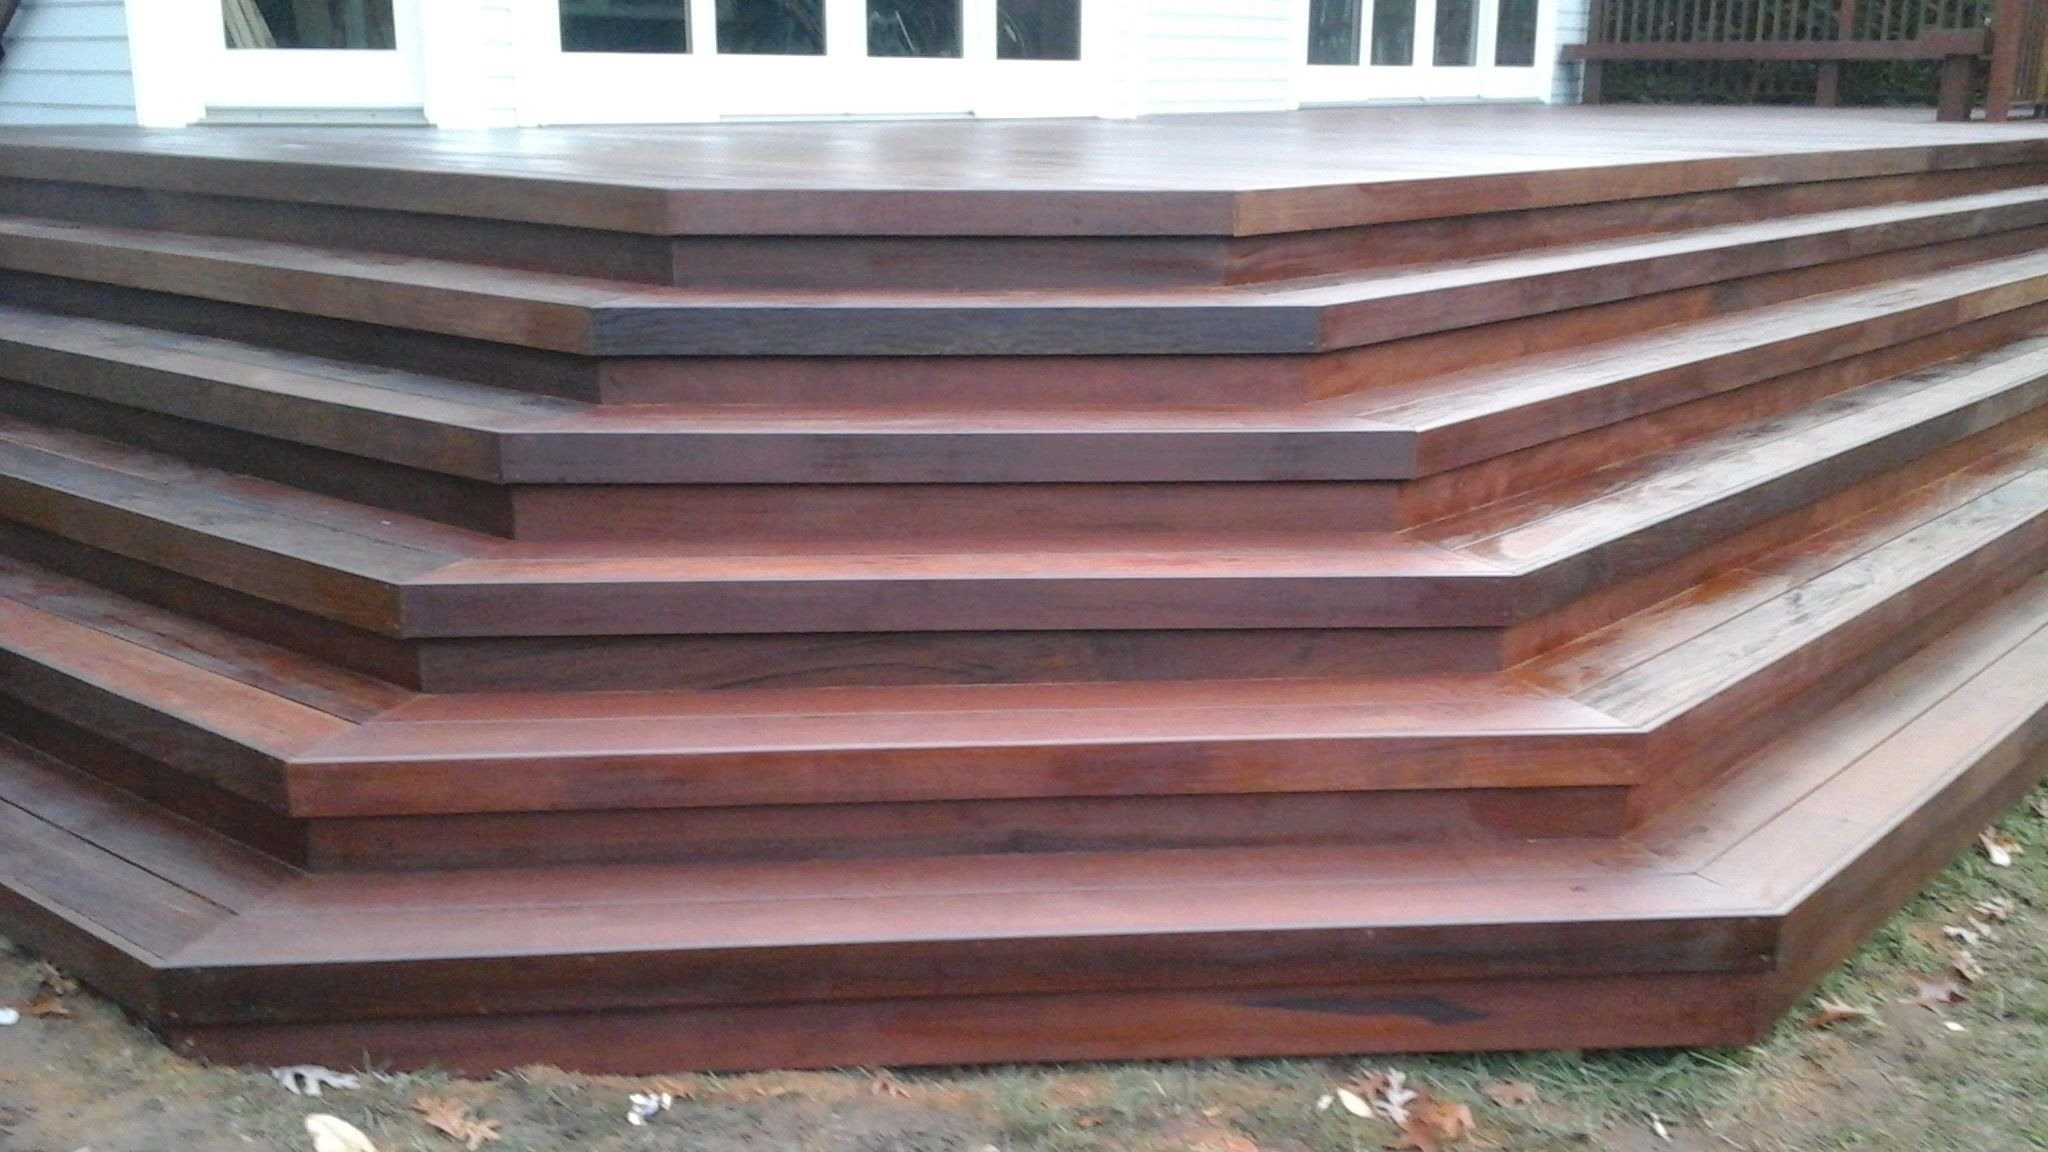 Deck in Cold Spring Harbor, NY - Picture 3208